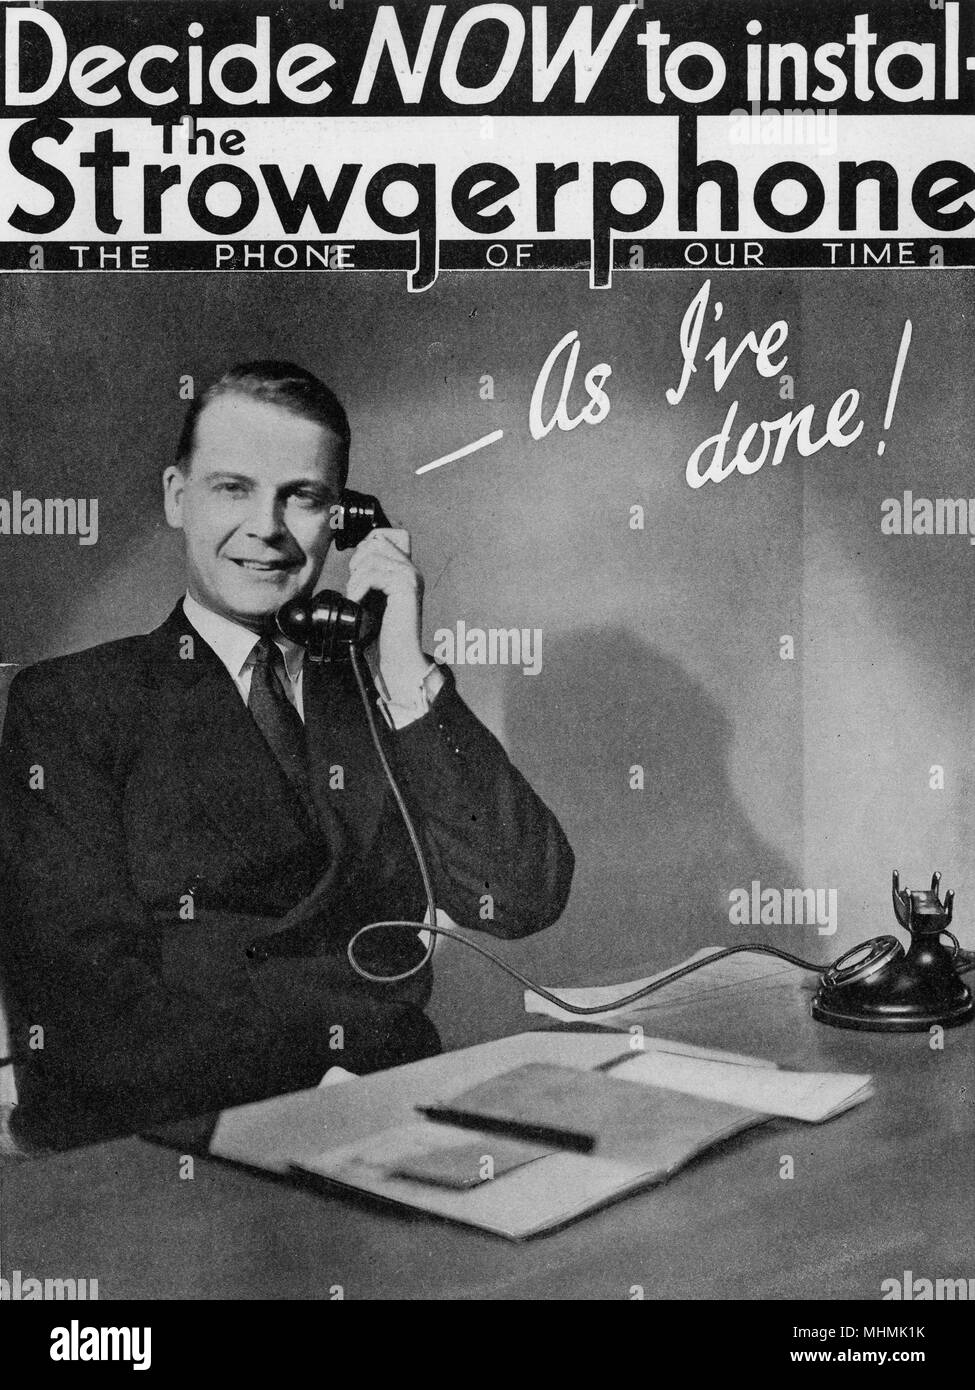 Decide NOW to instal the Strowgerphone - as I've done !       Date: 1933 - Stock Image